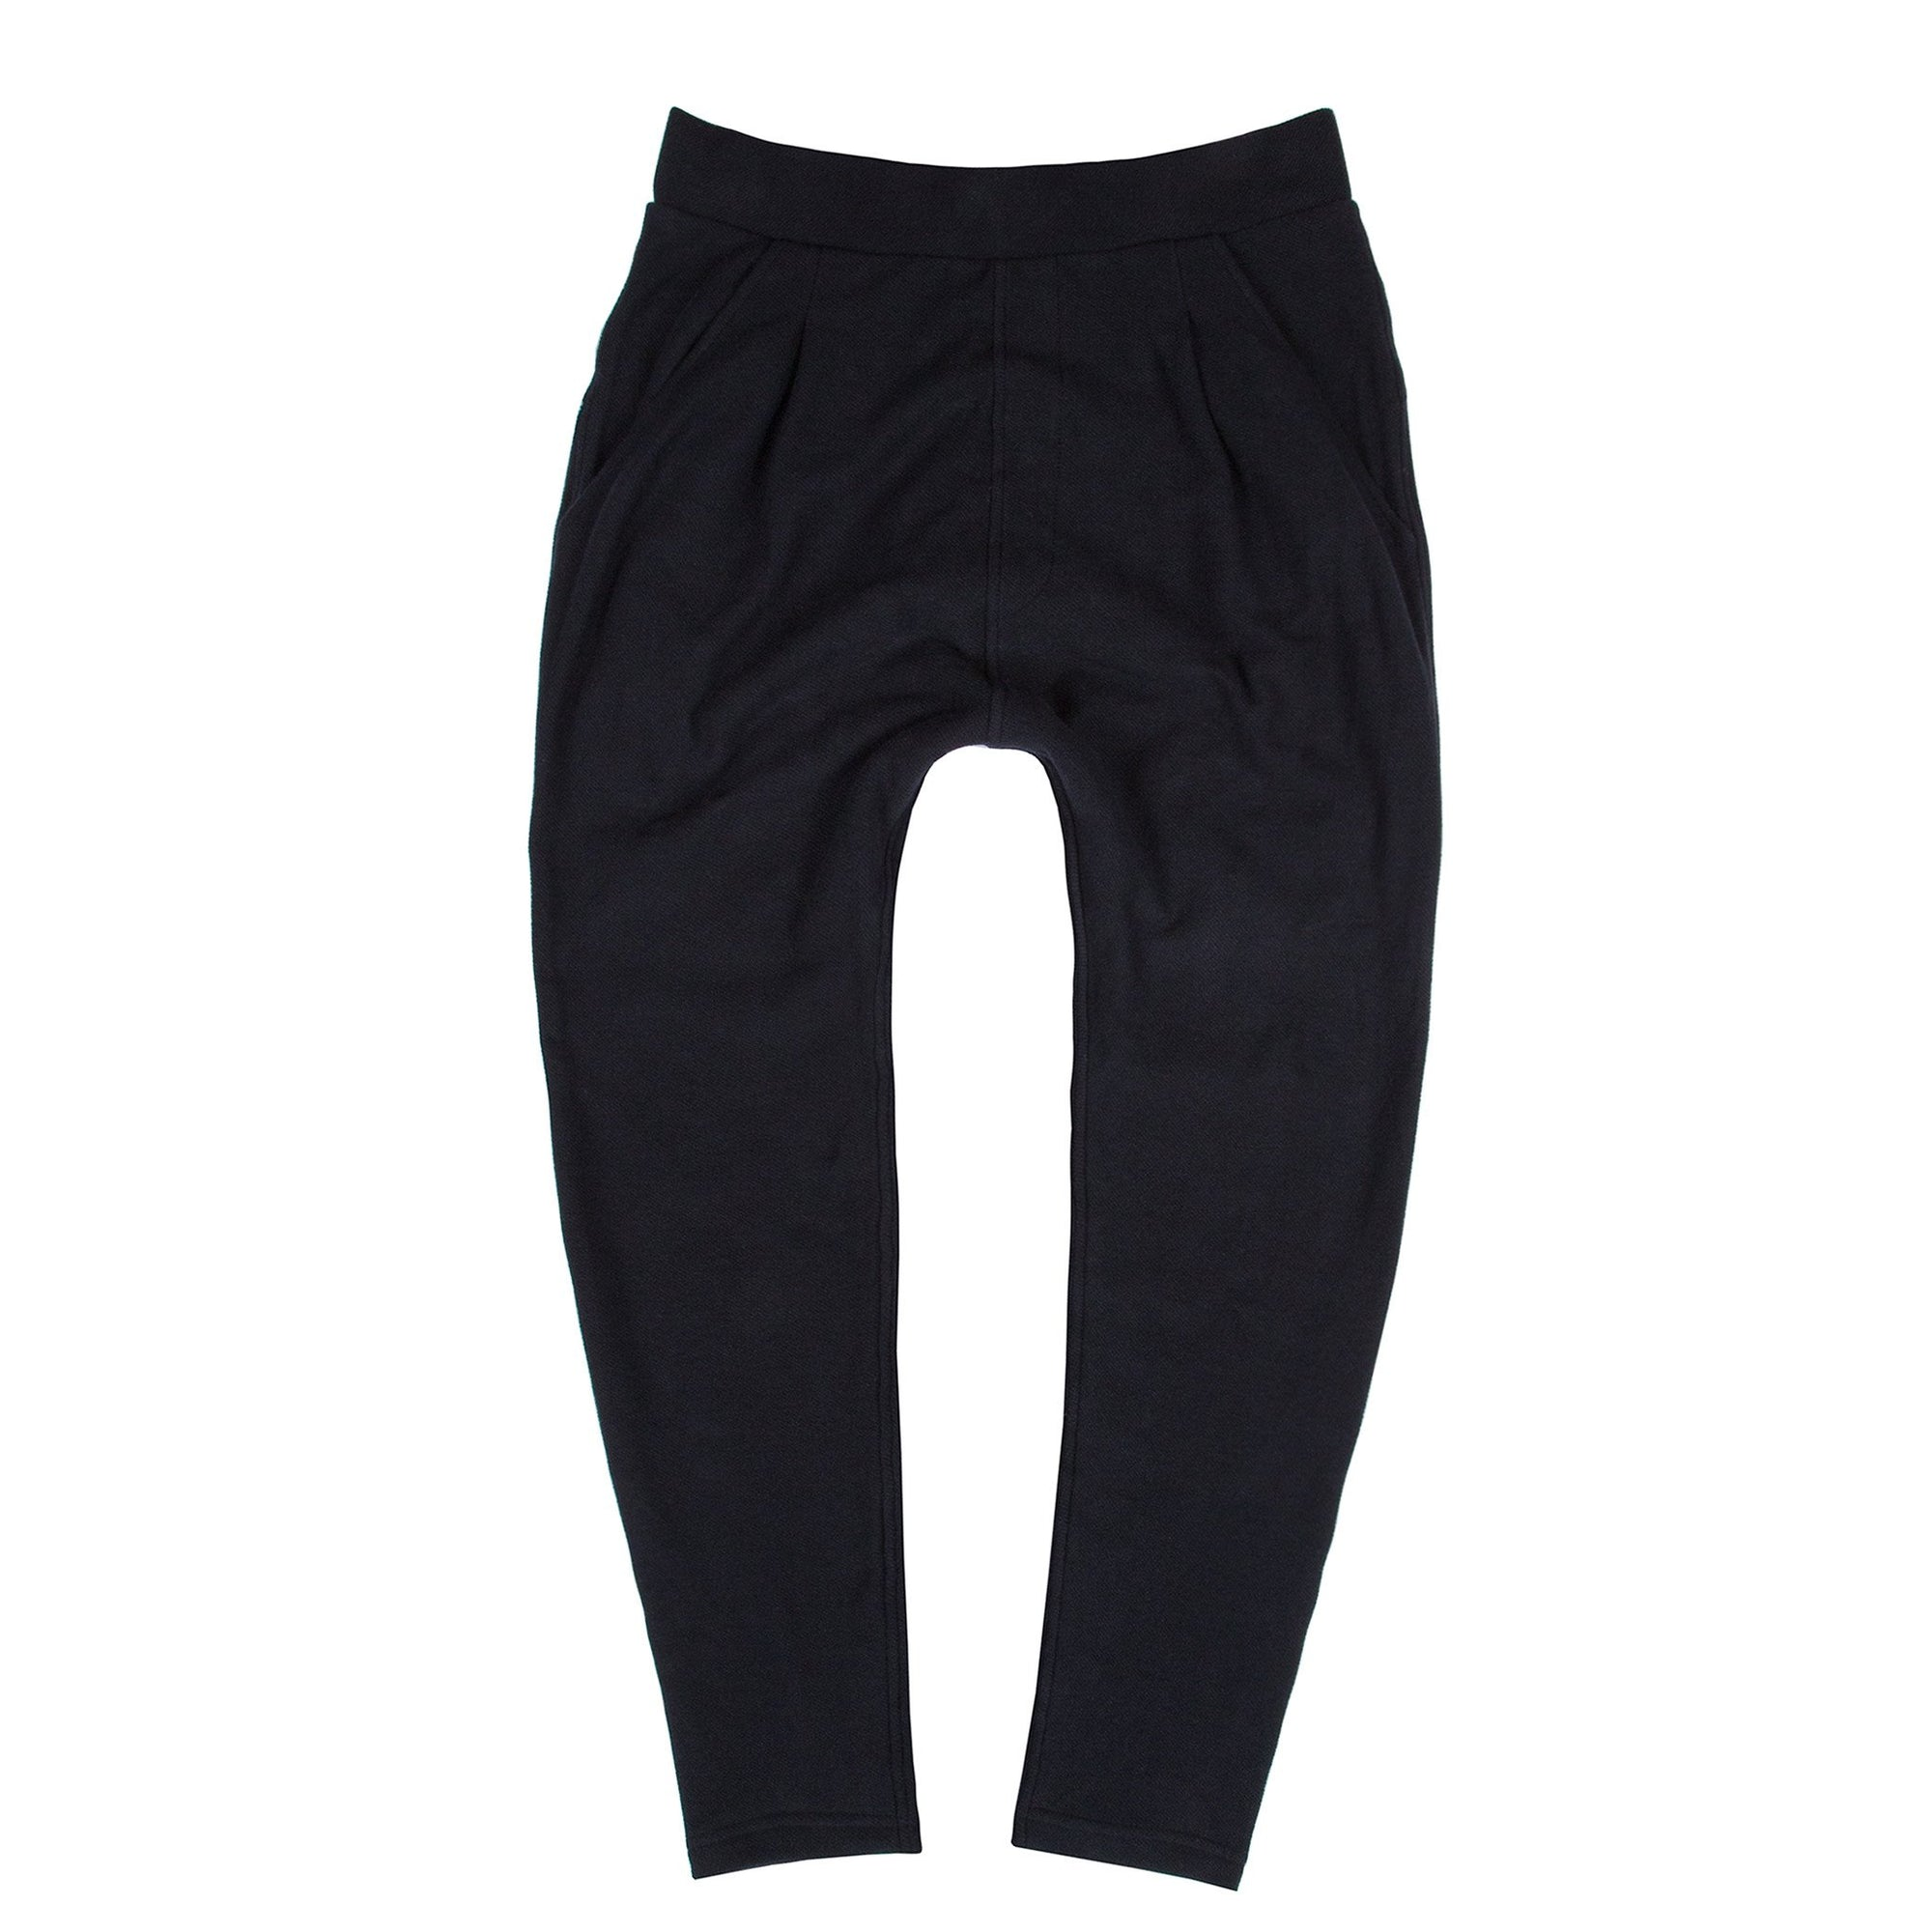 Pleated Sweatpant - Black